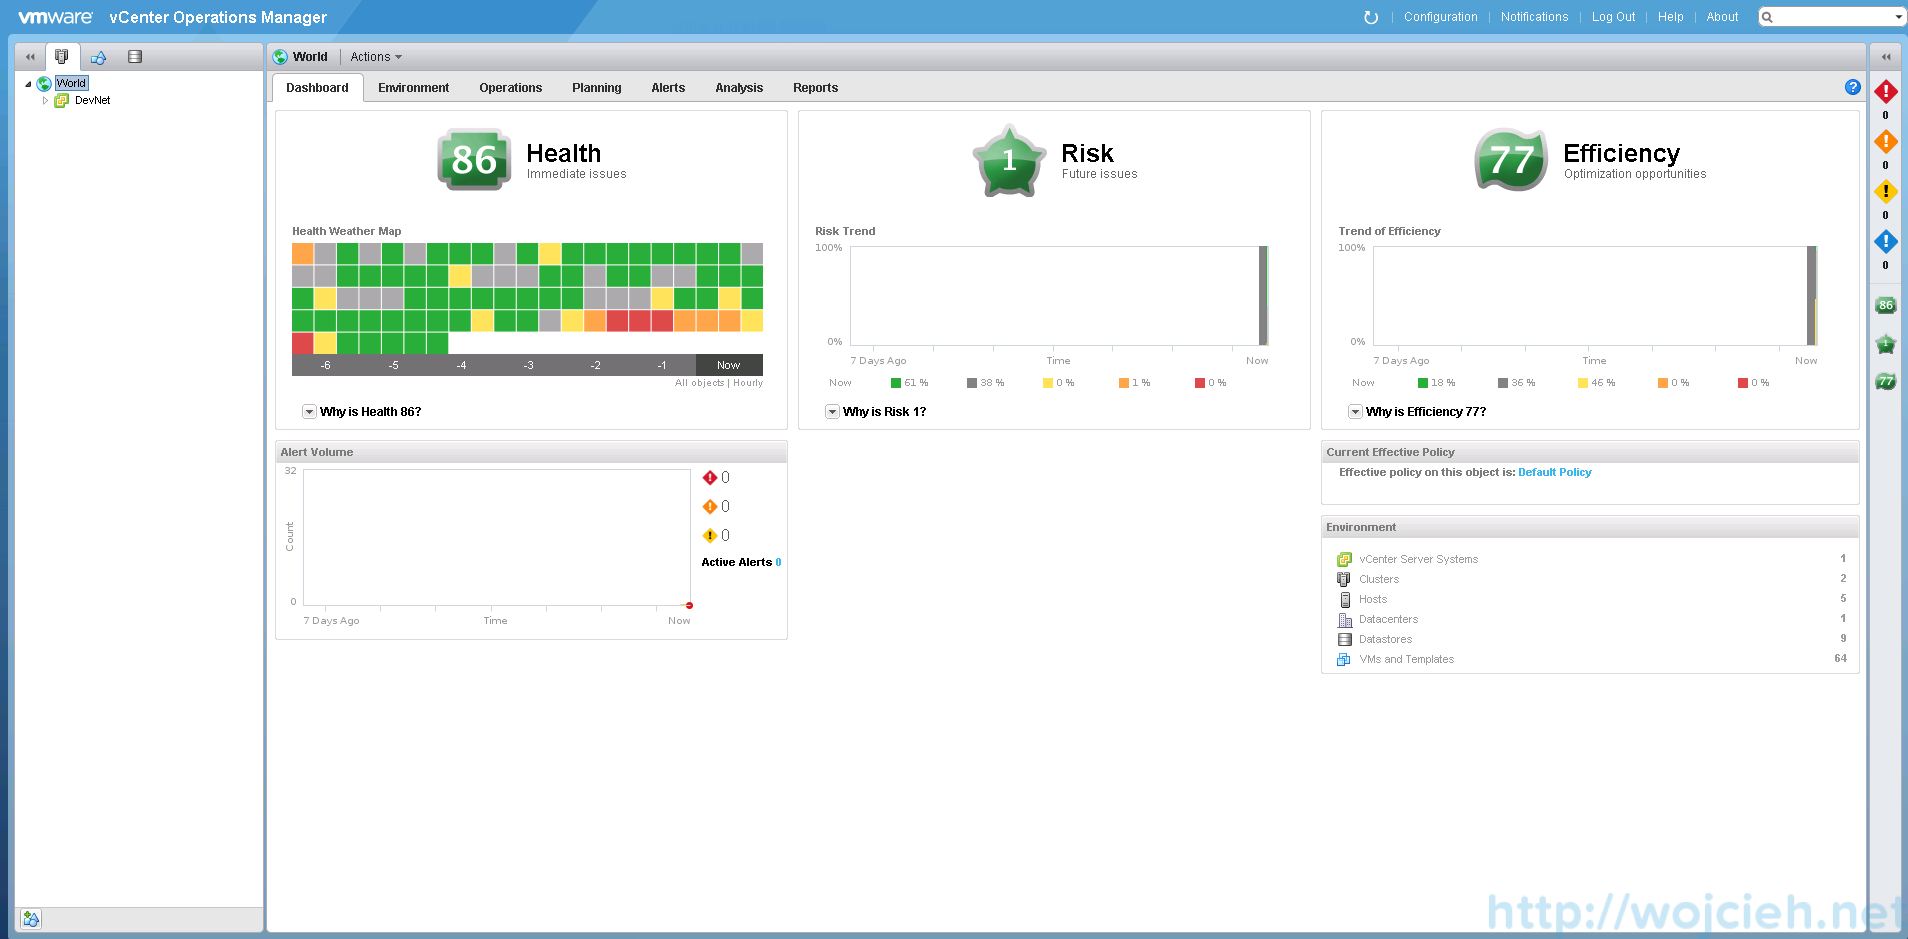 VMware vRealize Operations Manager - Usage 3